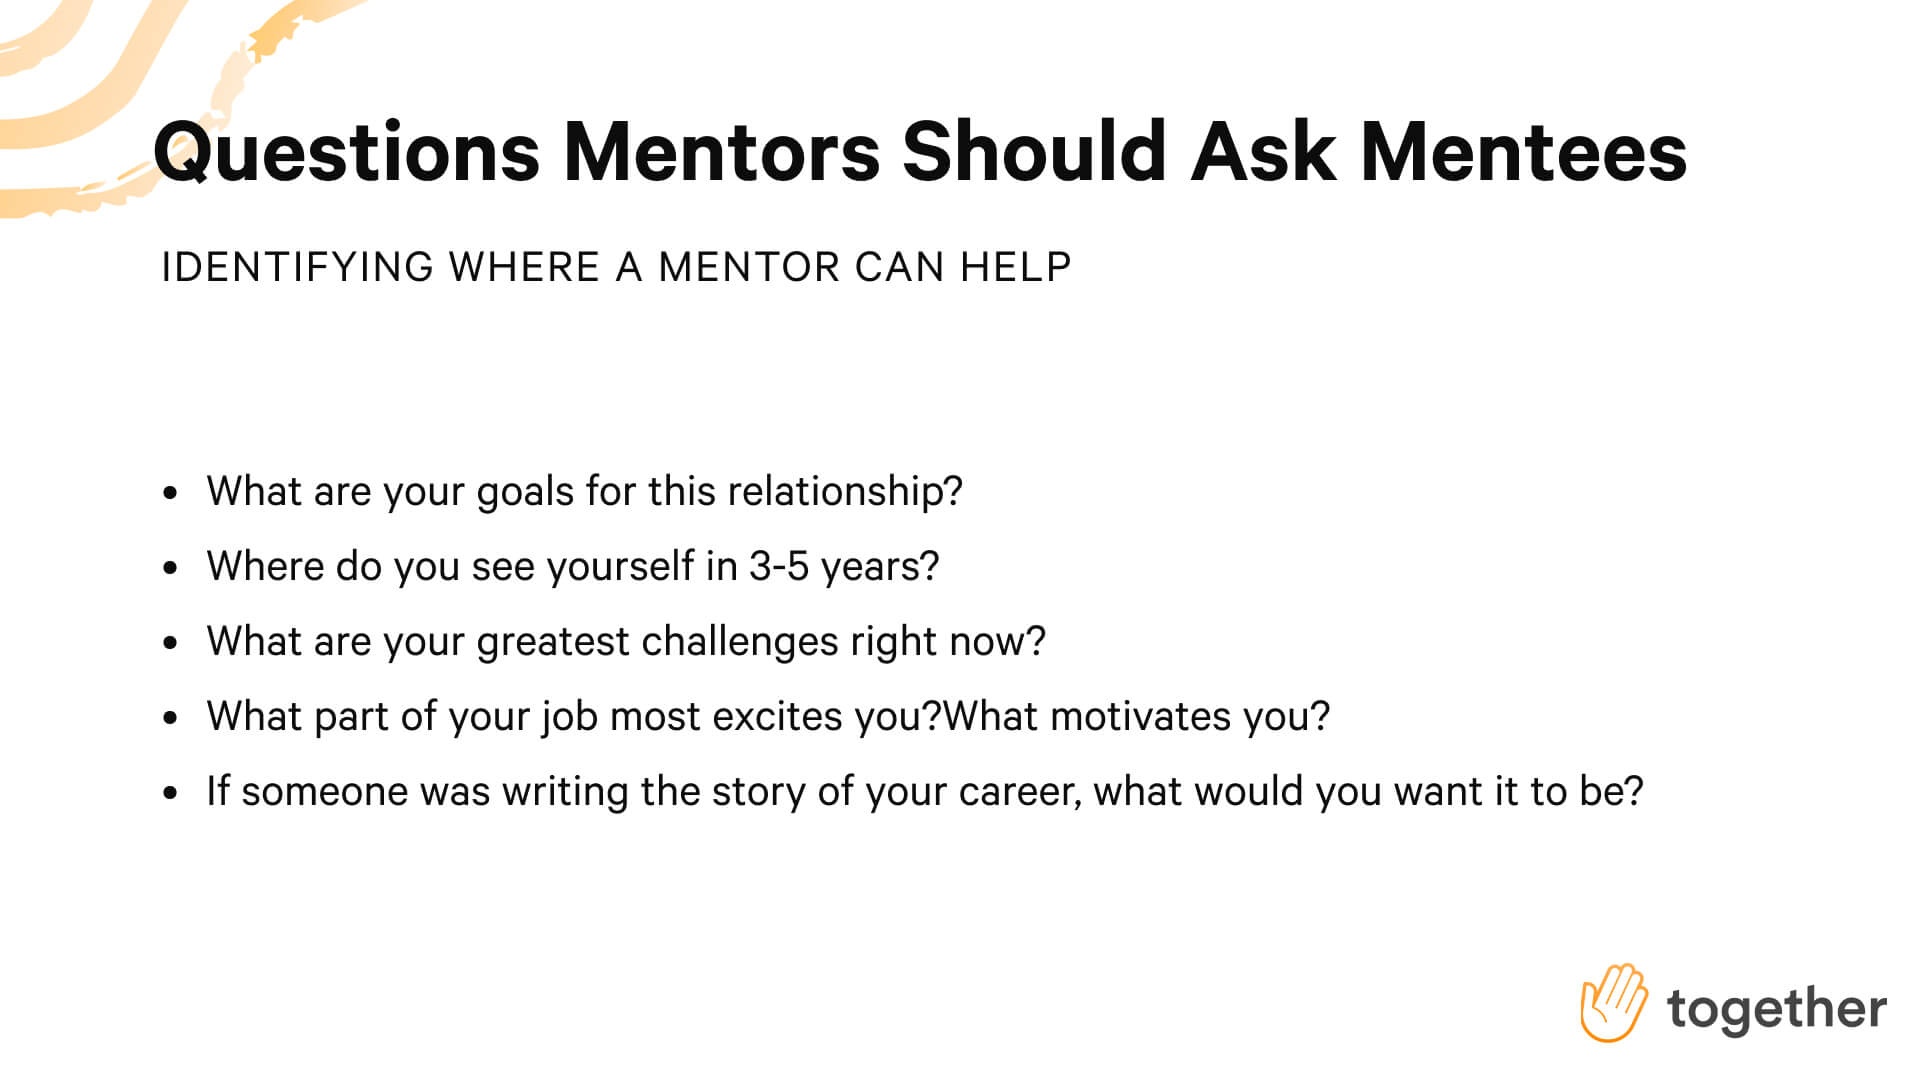 Questions mentors should ask their mentees to help get to know them and how to guide them throughout the relationship